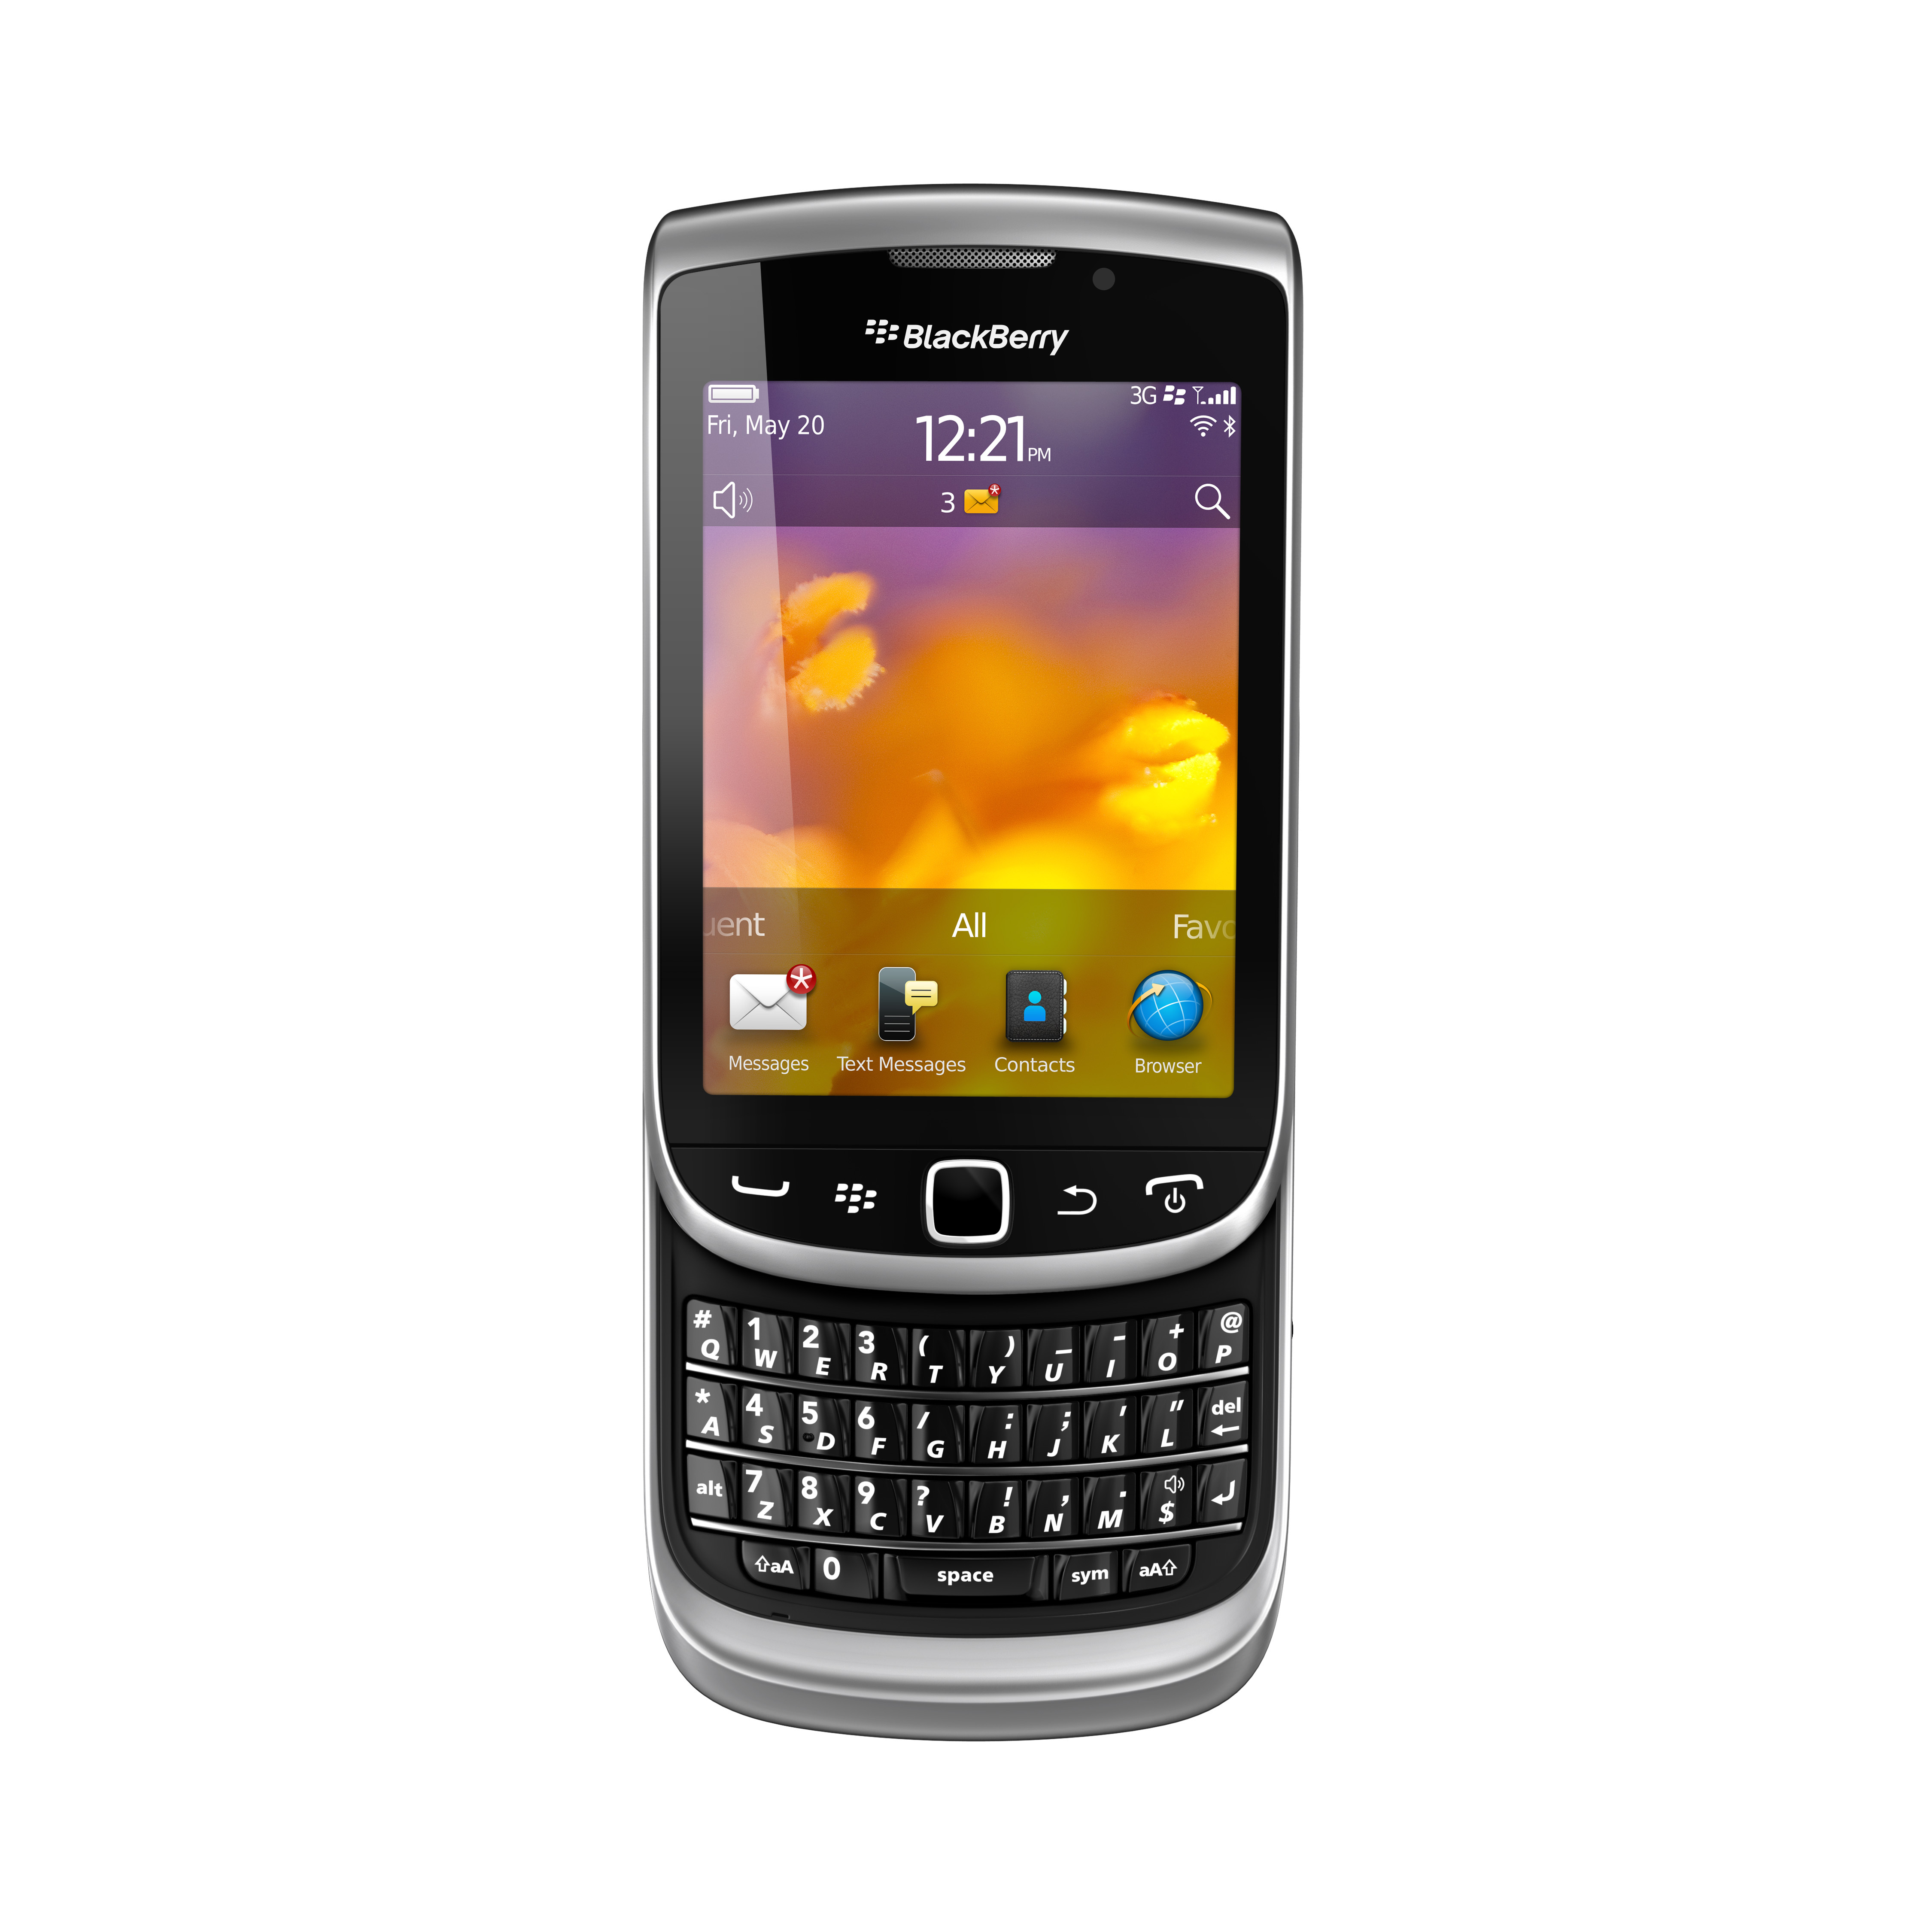 BlackBerry Torch 9810 is only $49.95 with AT&T